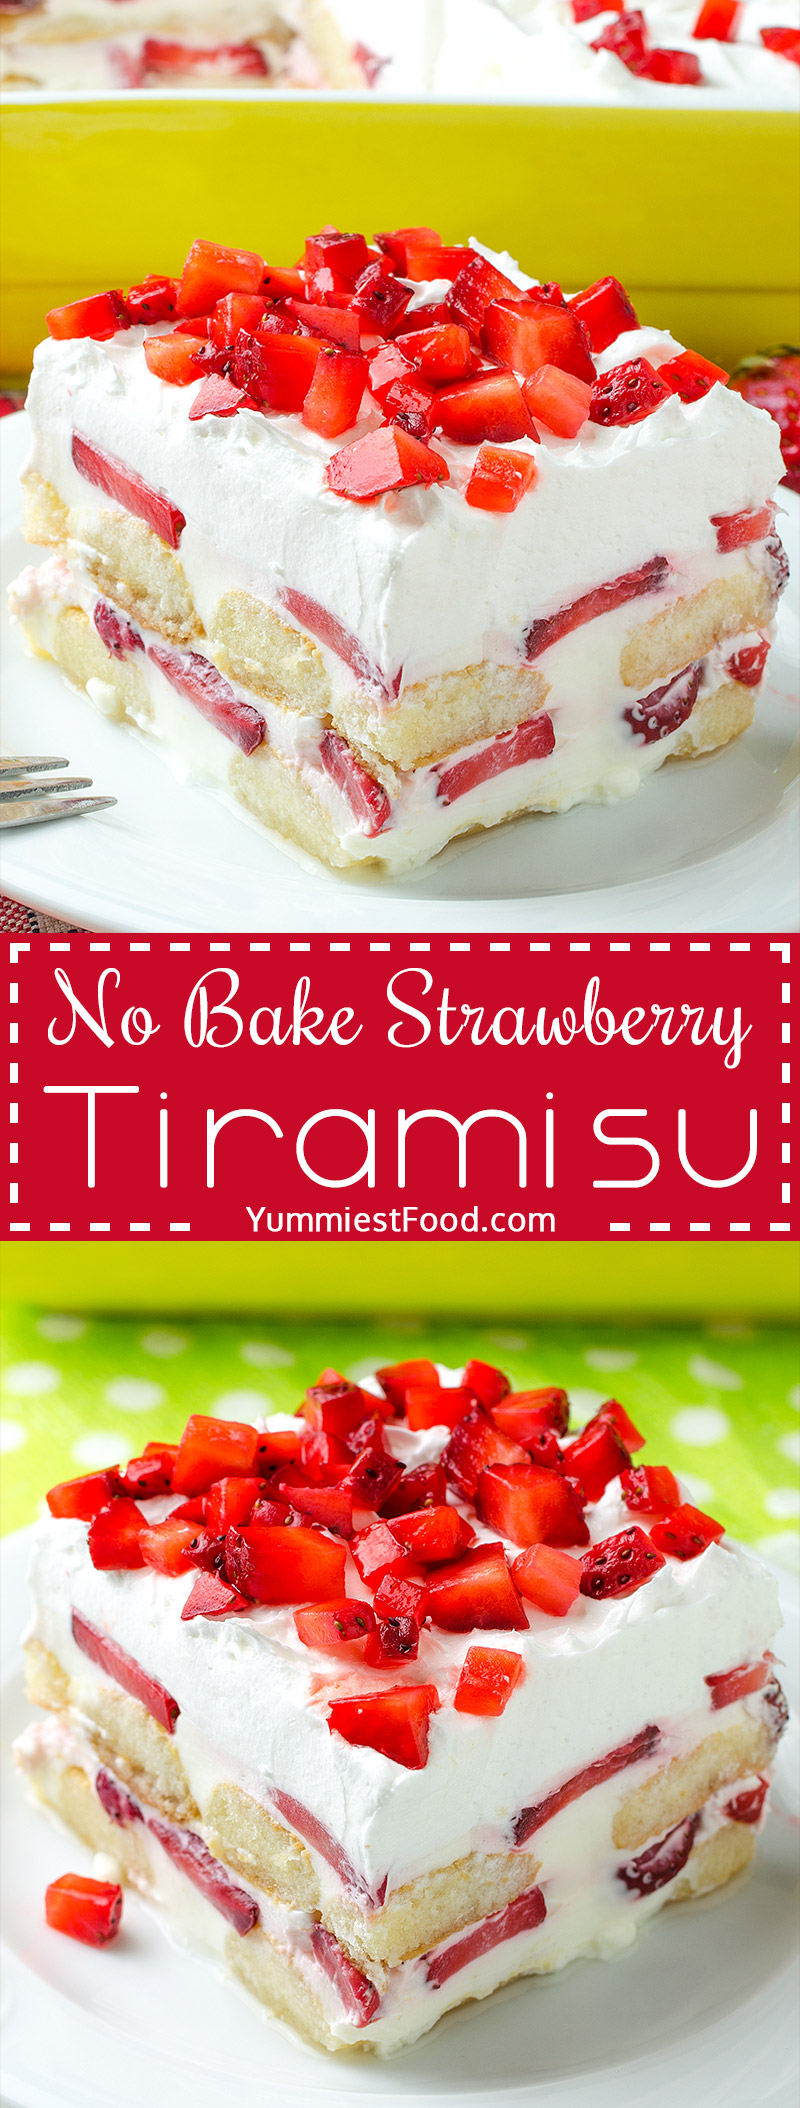 No BAKE Strawberry Tiramisu is the perfect EASY dessert for spring and summer potlucks, parties, picnics and Mother's Day. The perfect cool dessert